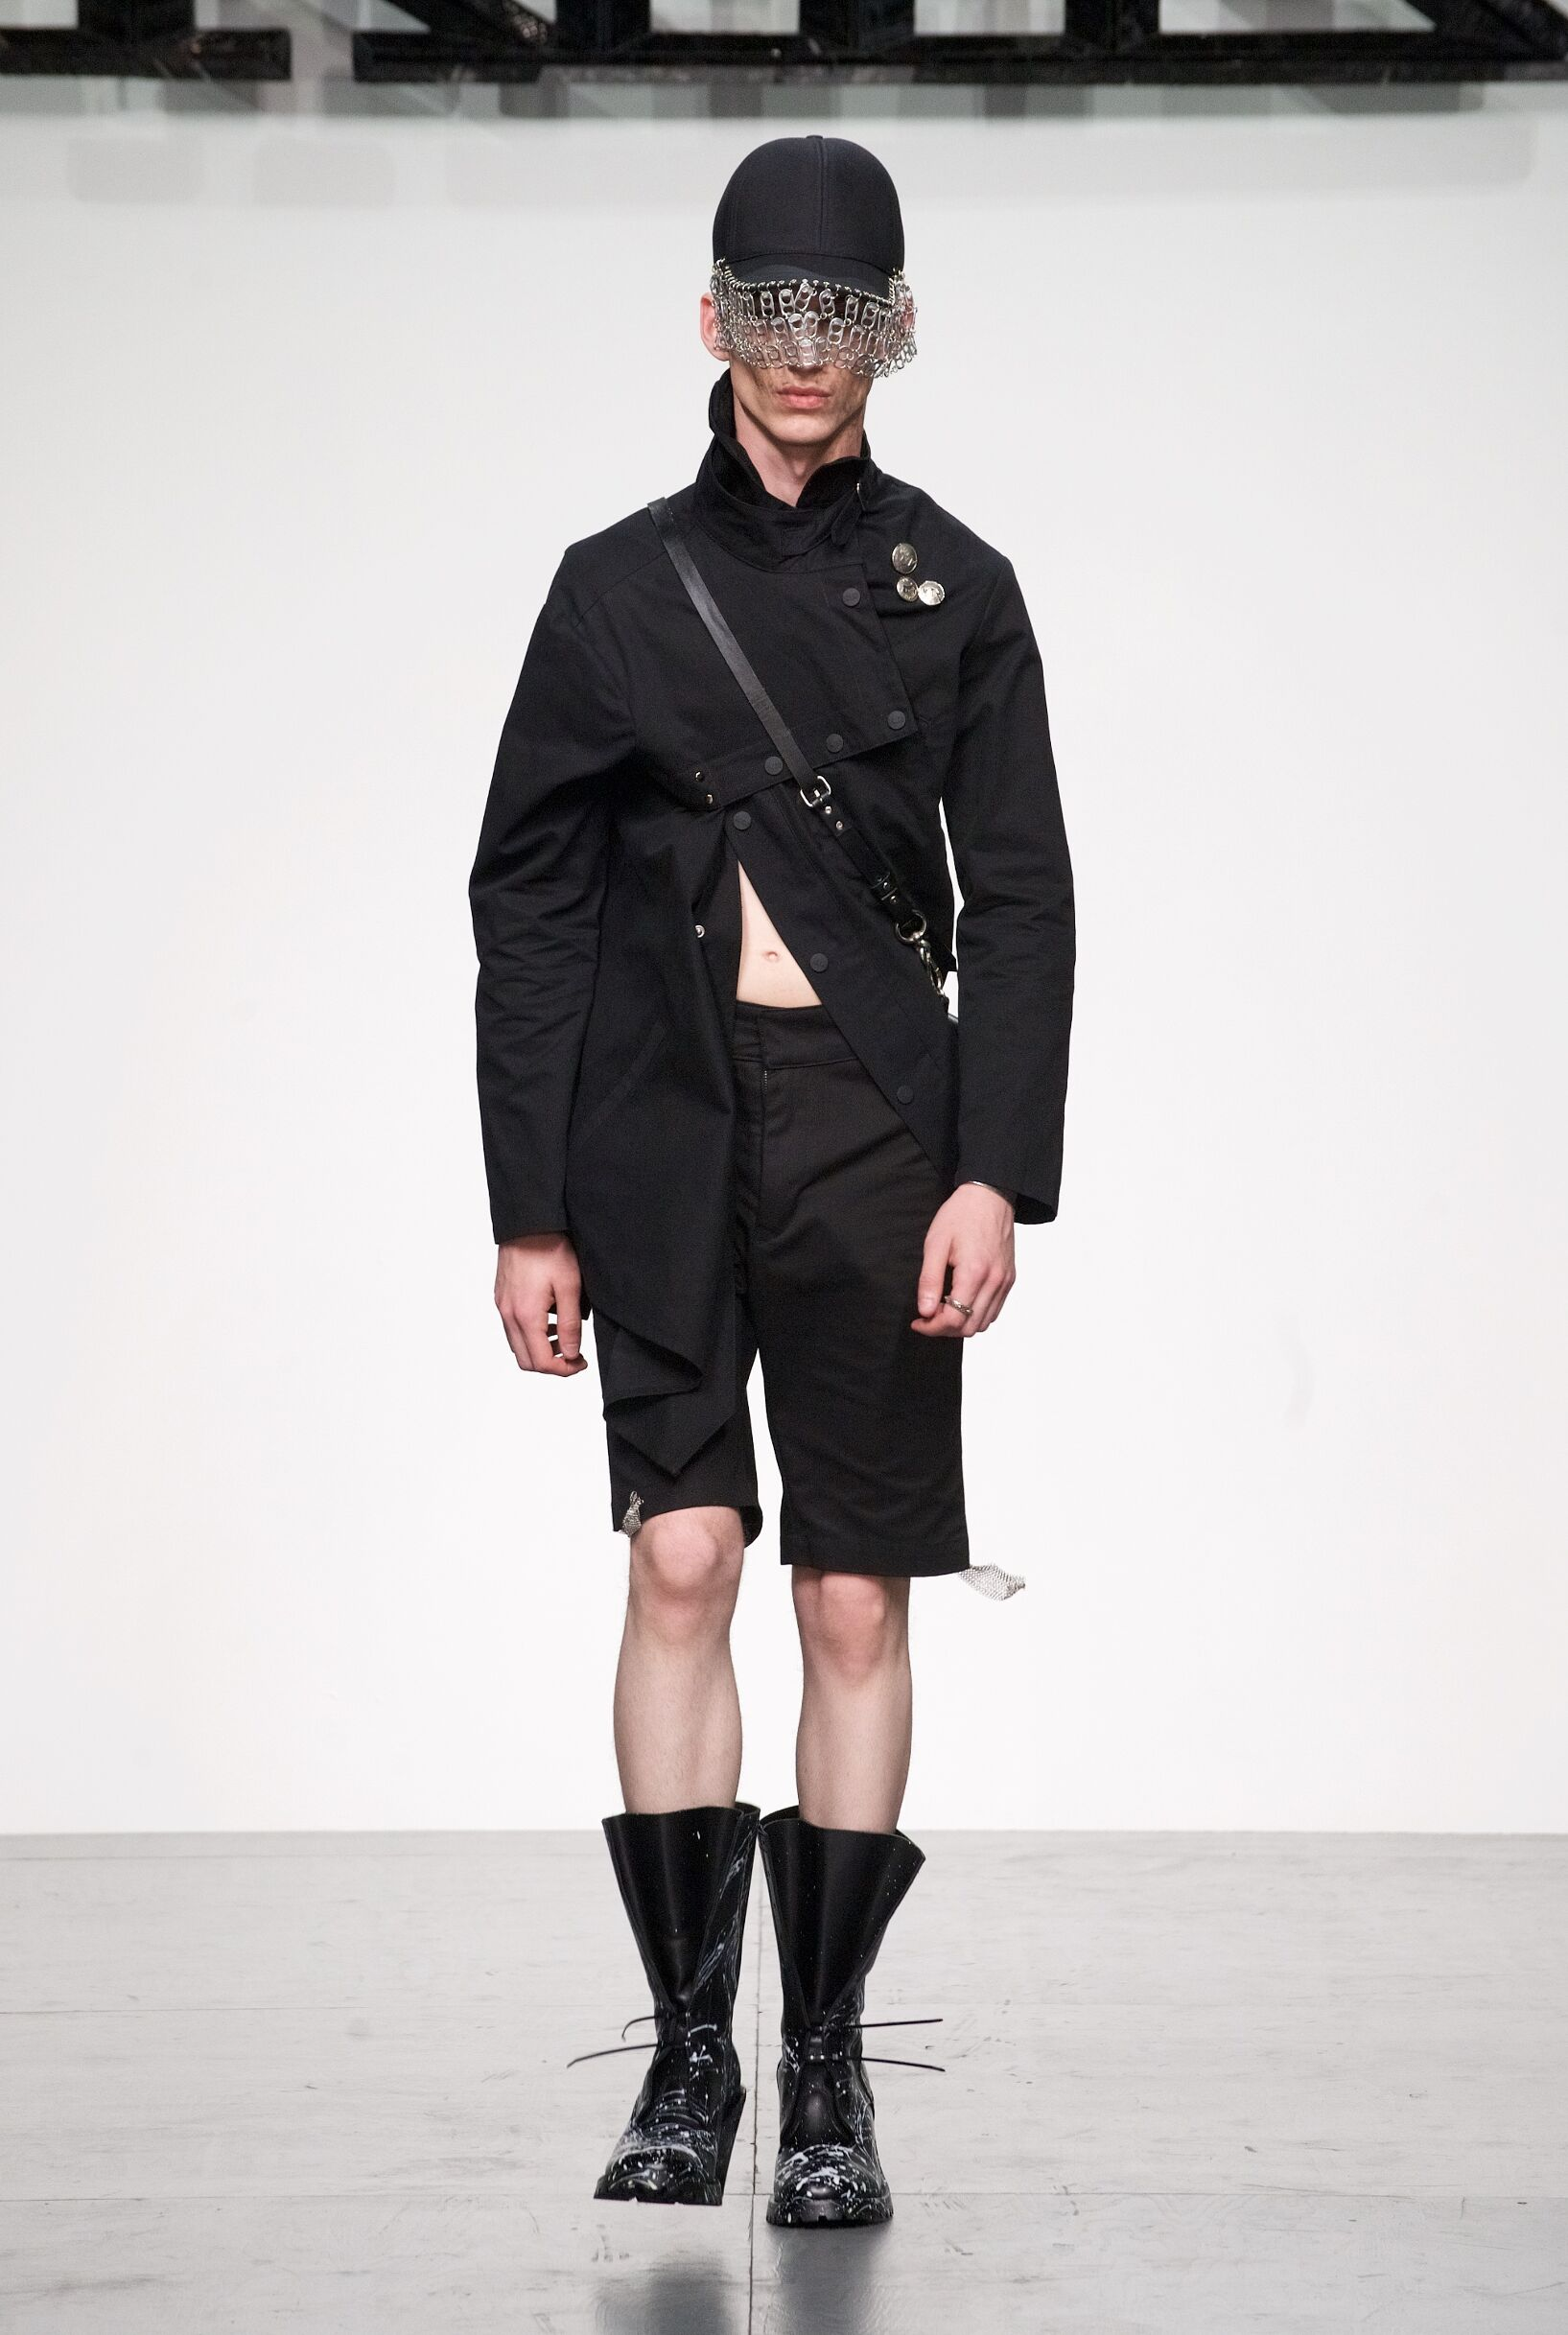 KTZ 2018 Menswear Trends